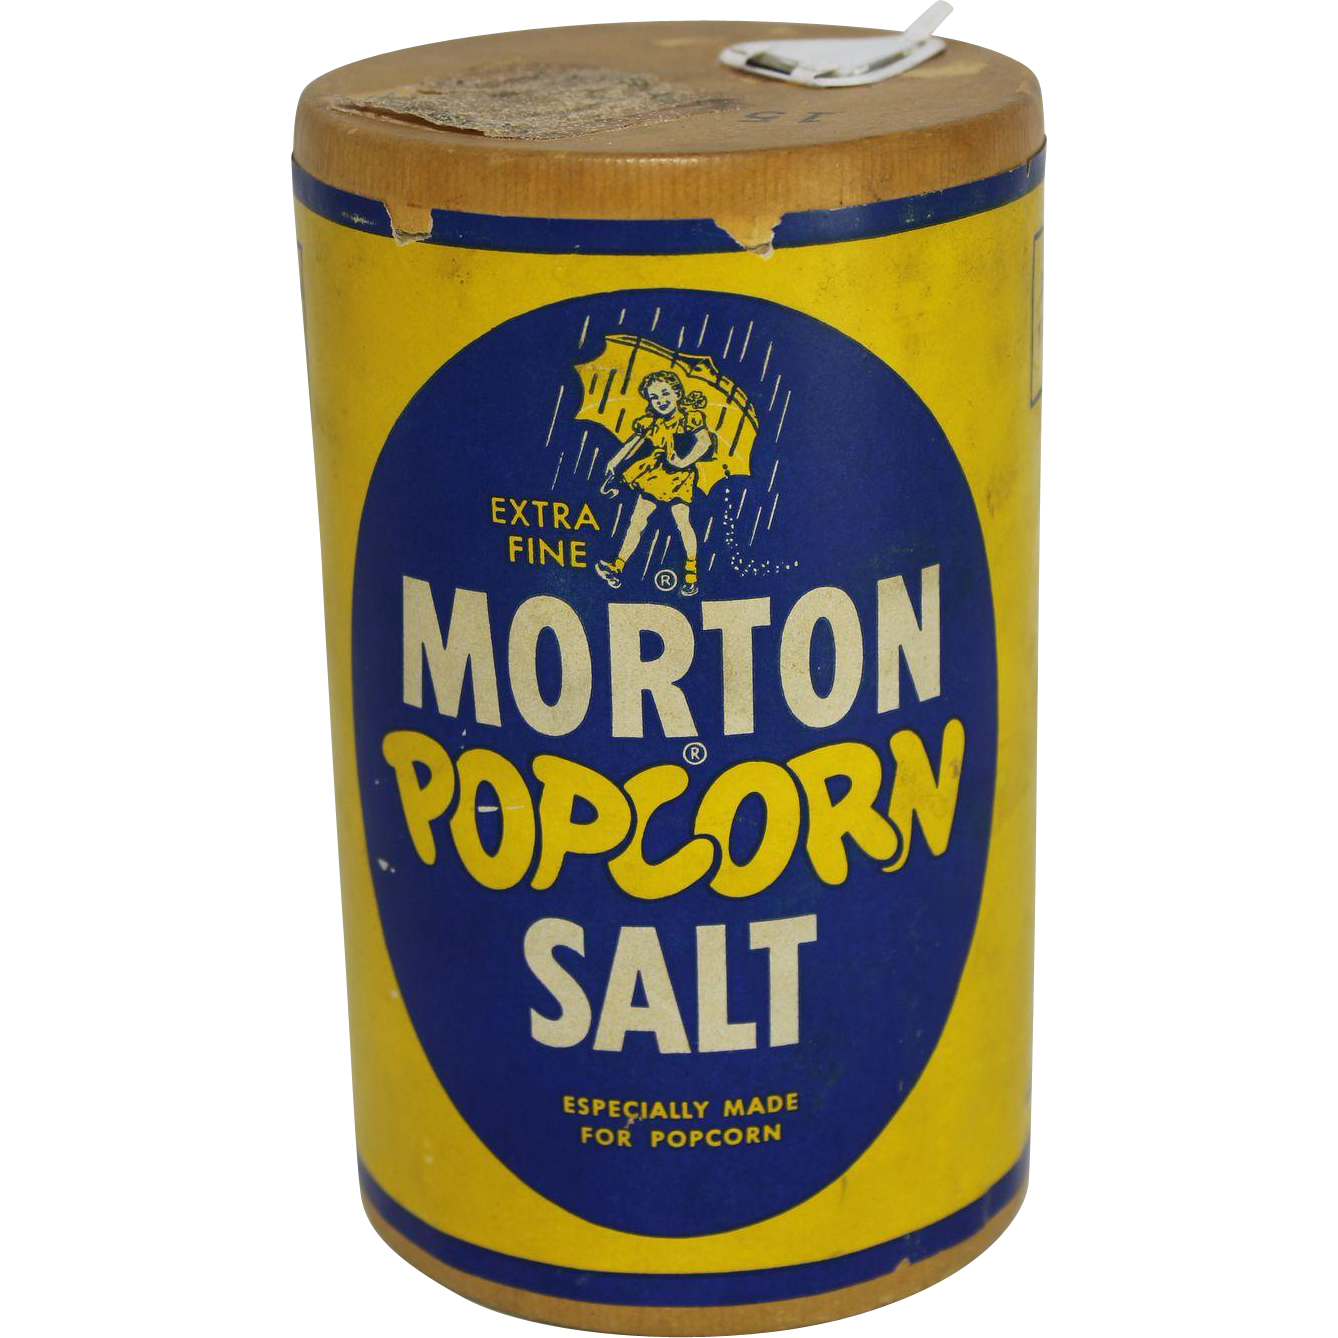 Vintage Morton Popcorn Salt Cardboard Container from thecuriousamerican on Ruby Lane